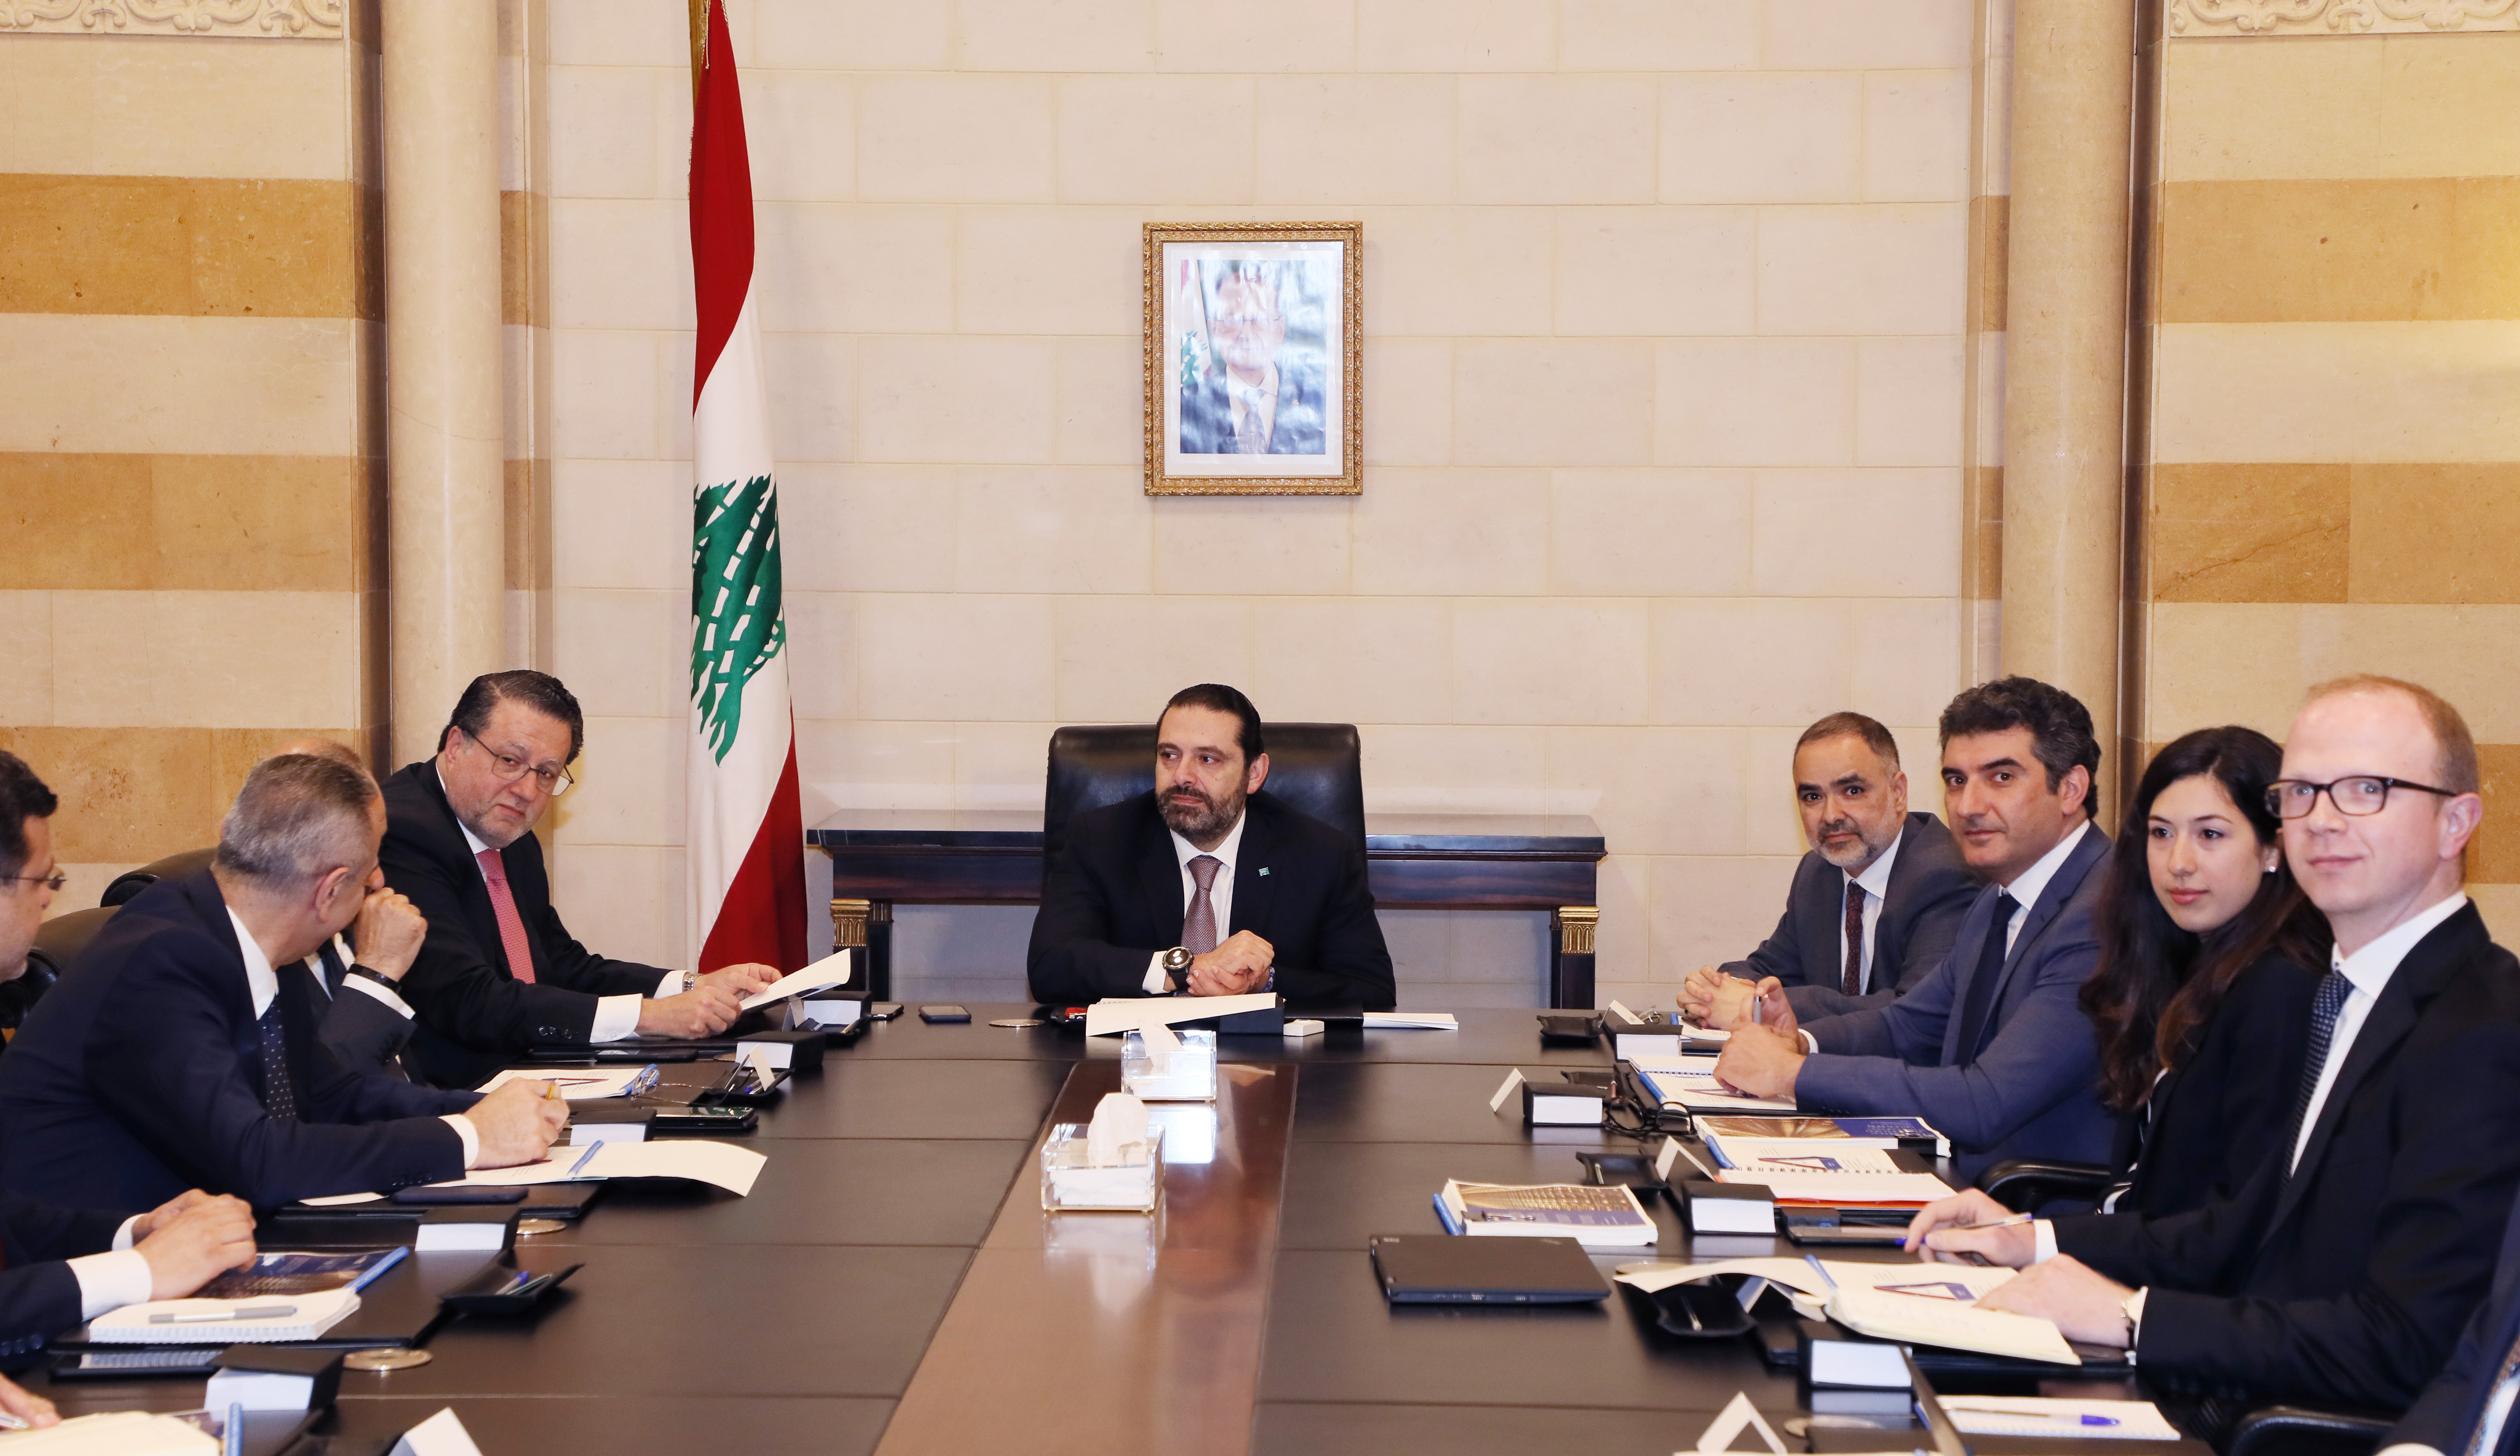 Pr Minister Saad Hariri meets Minister Mouhamad Choukair with a Delegation